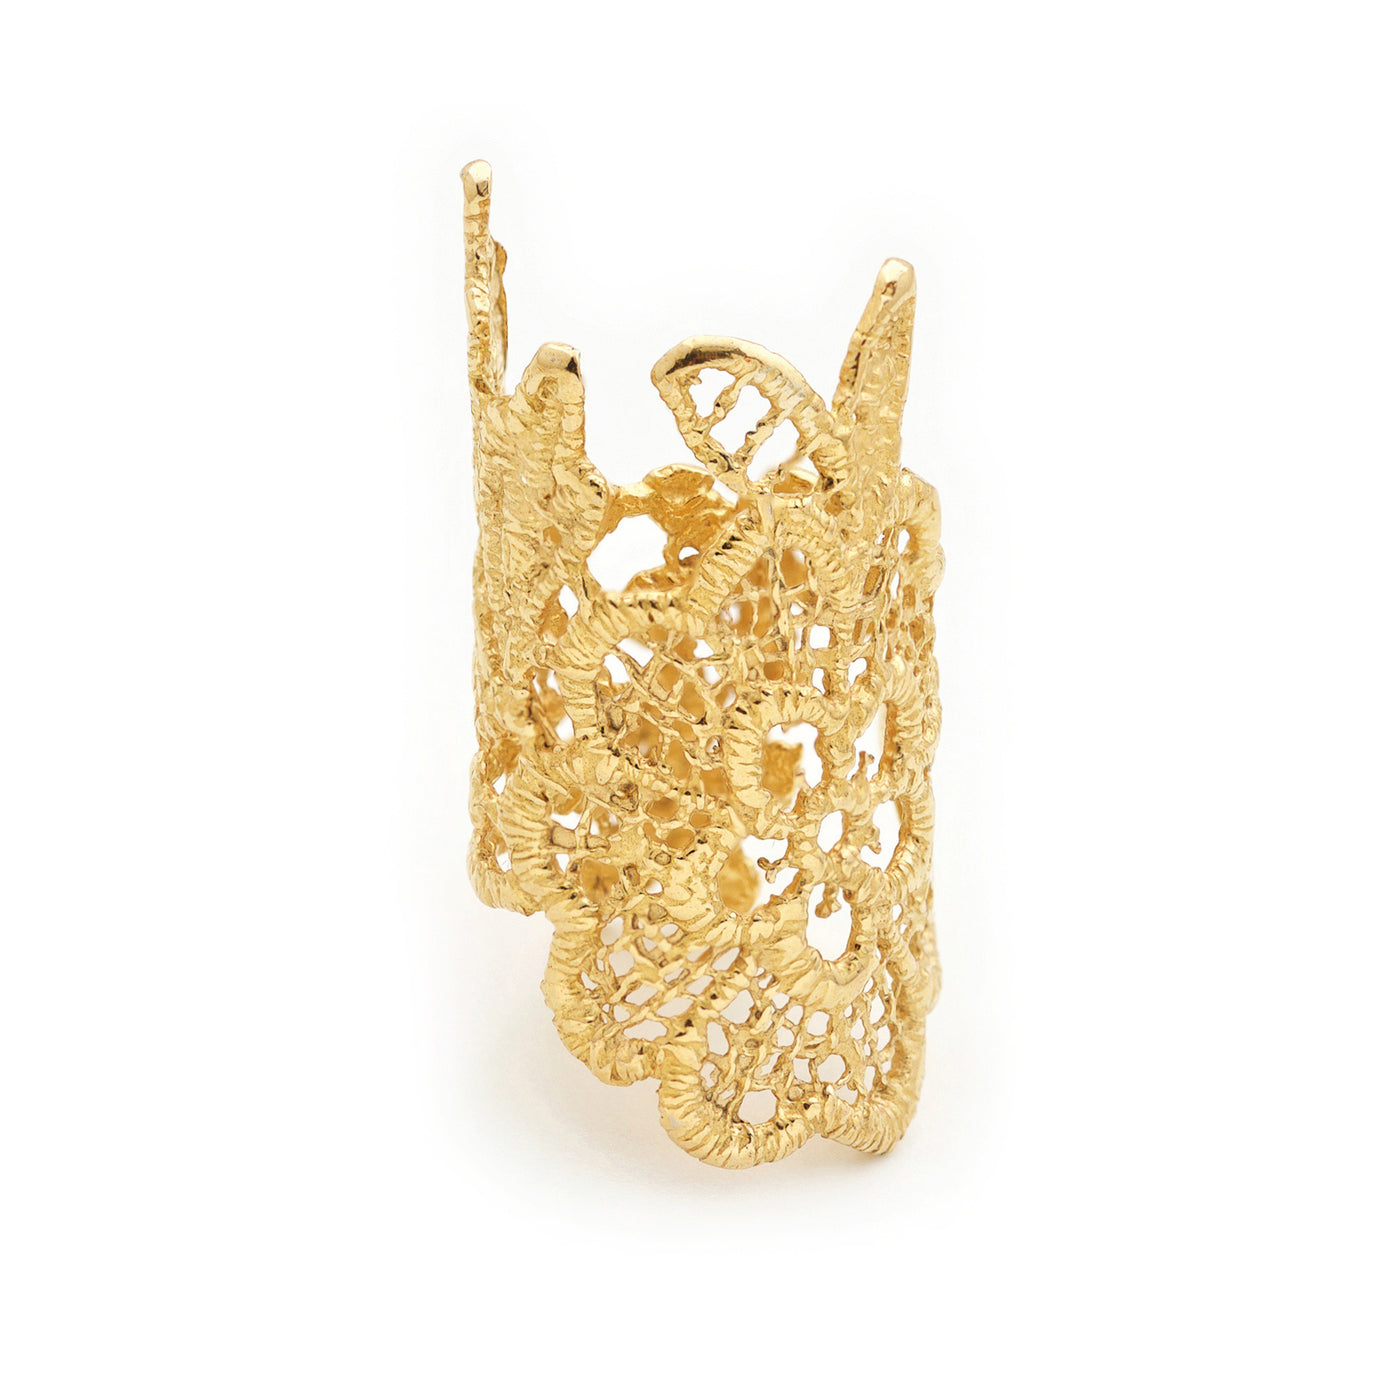 LACE 24k GOLD-PLATED RING